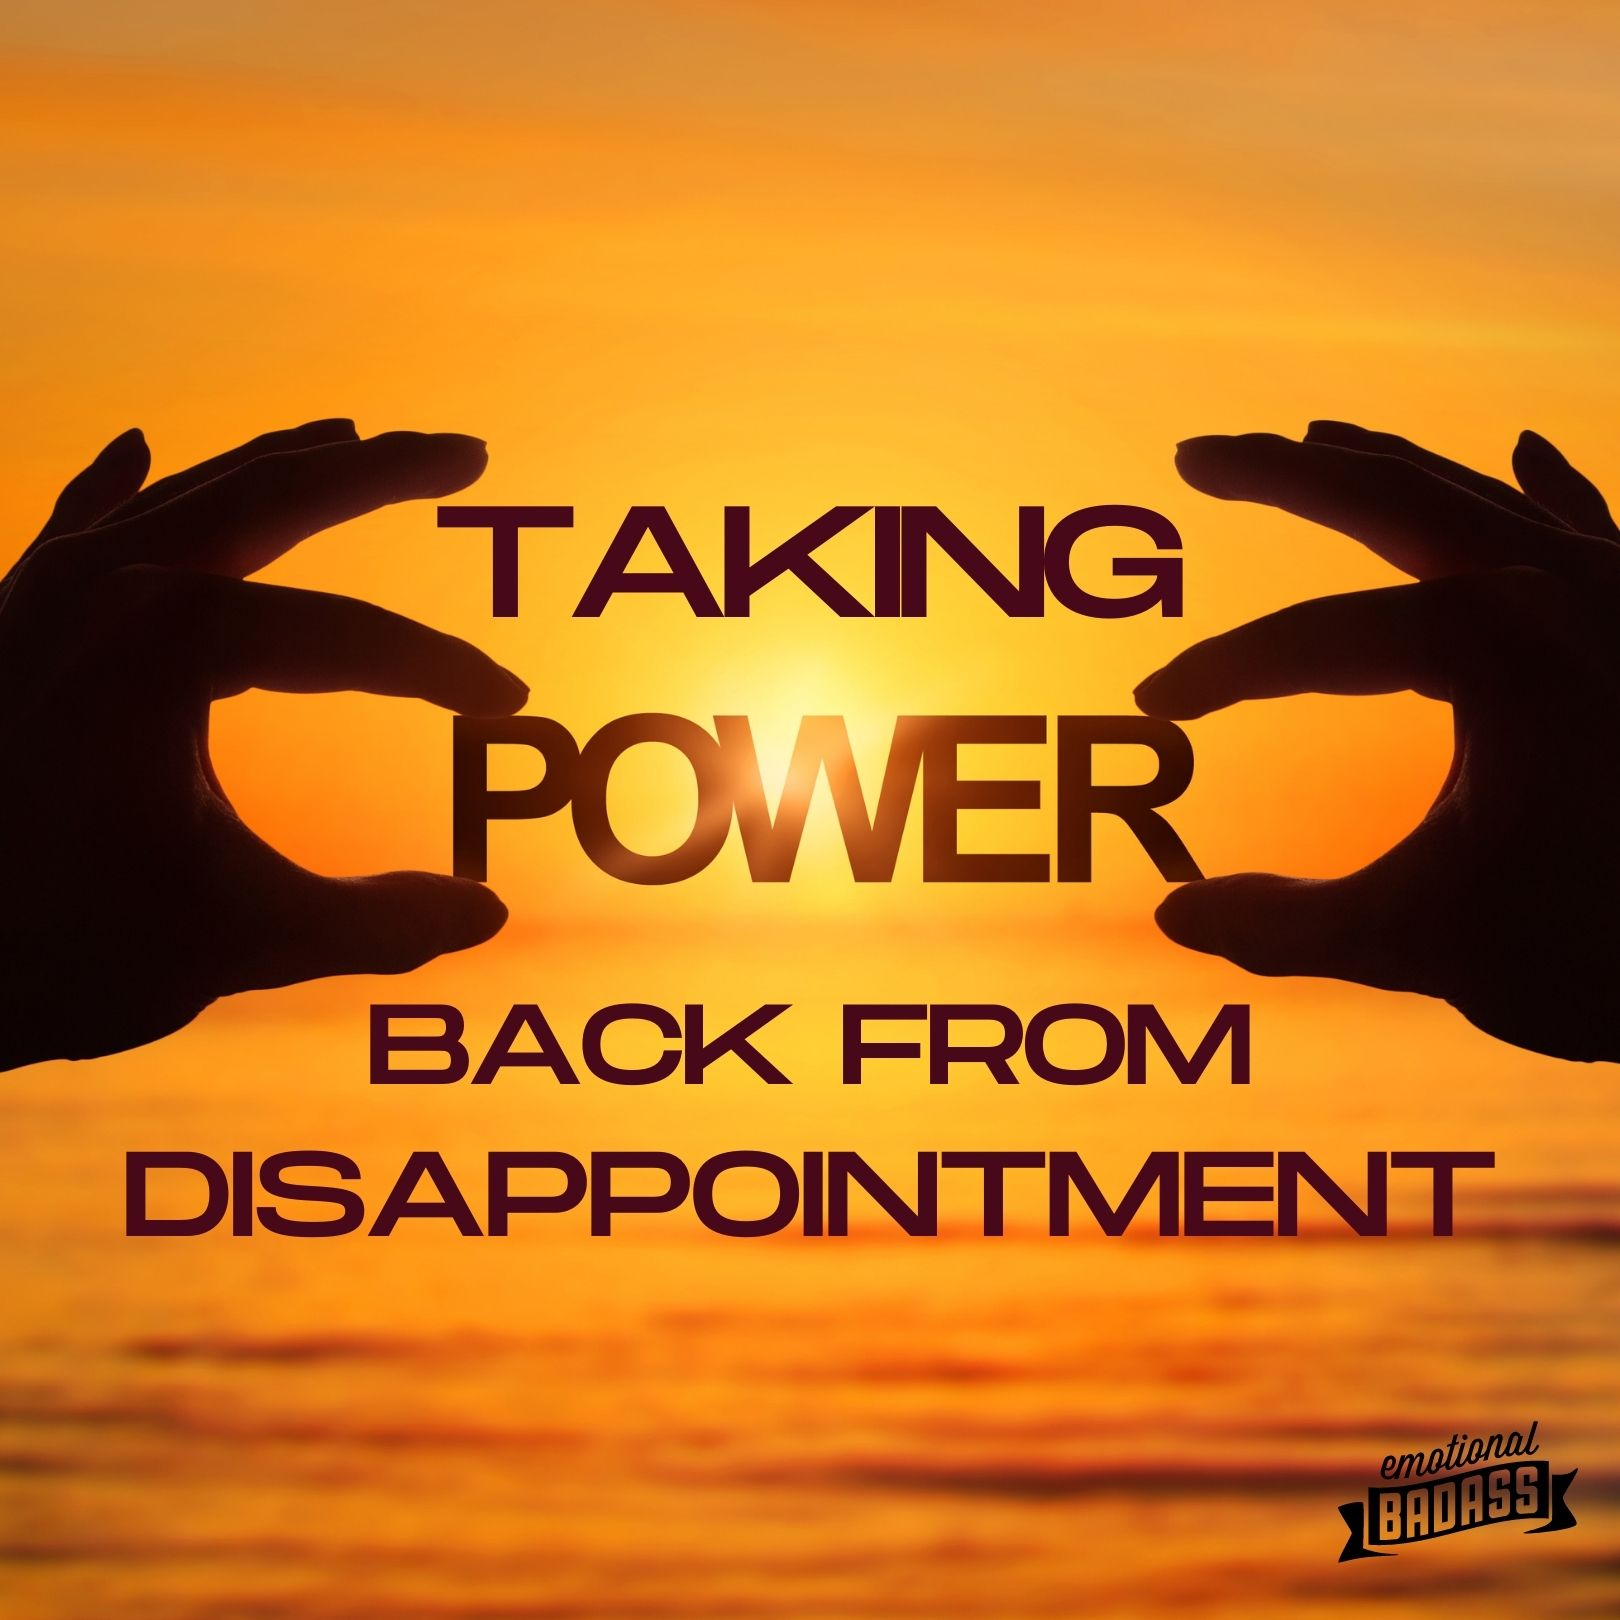 Taking our Power back from Disappointment